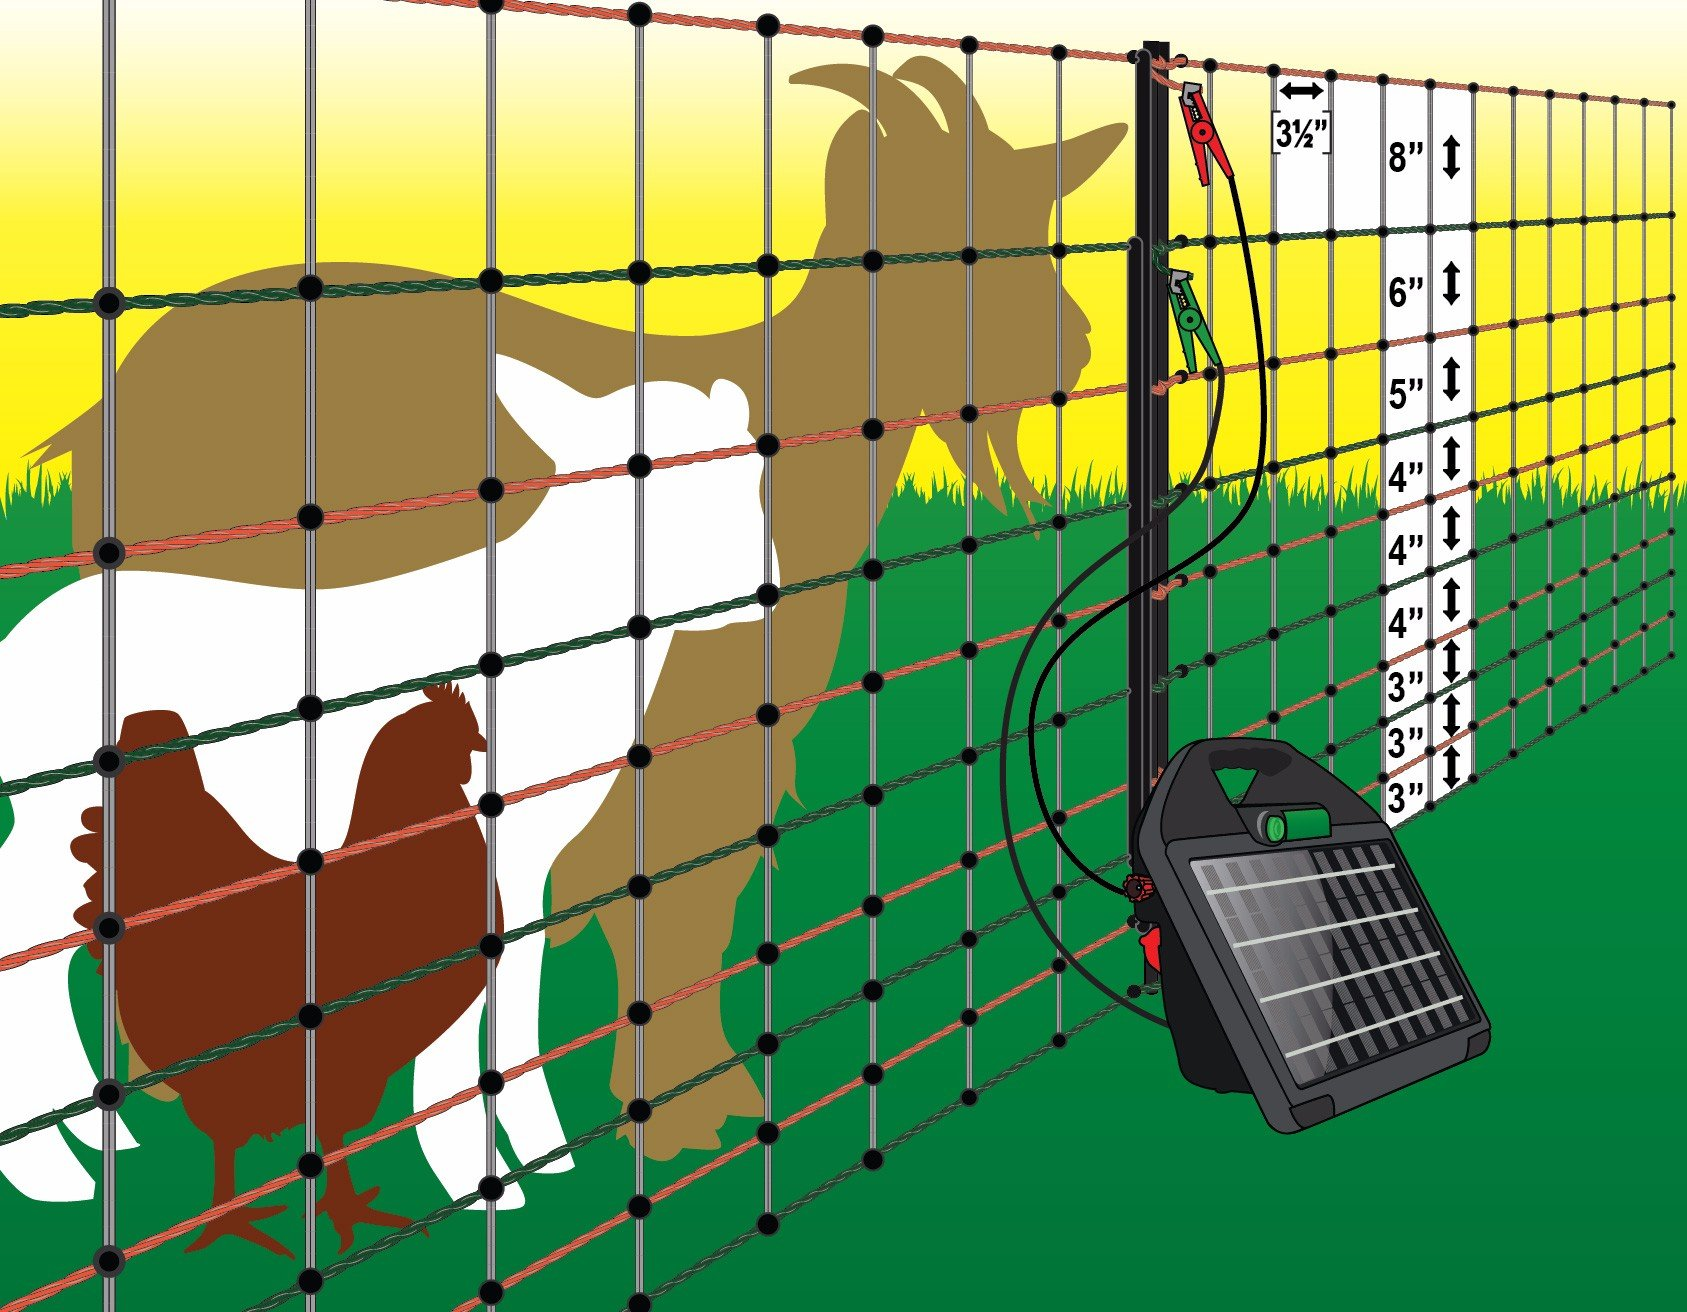 82' Electric Poultry Pen - POWERFIELDS - High Quality